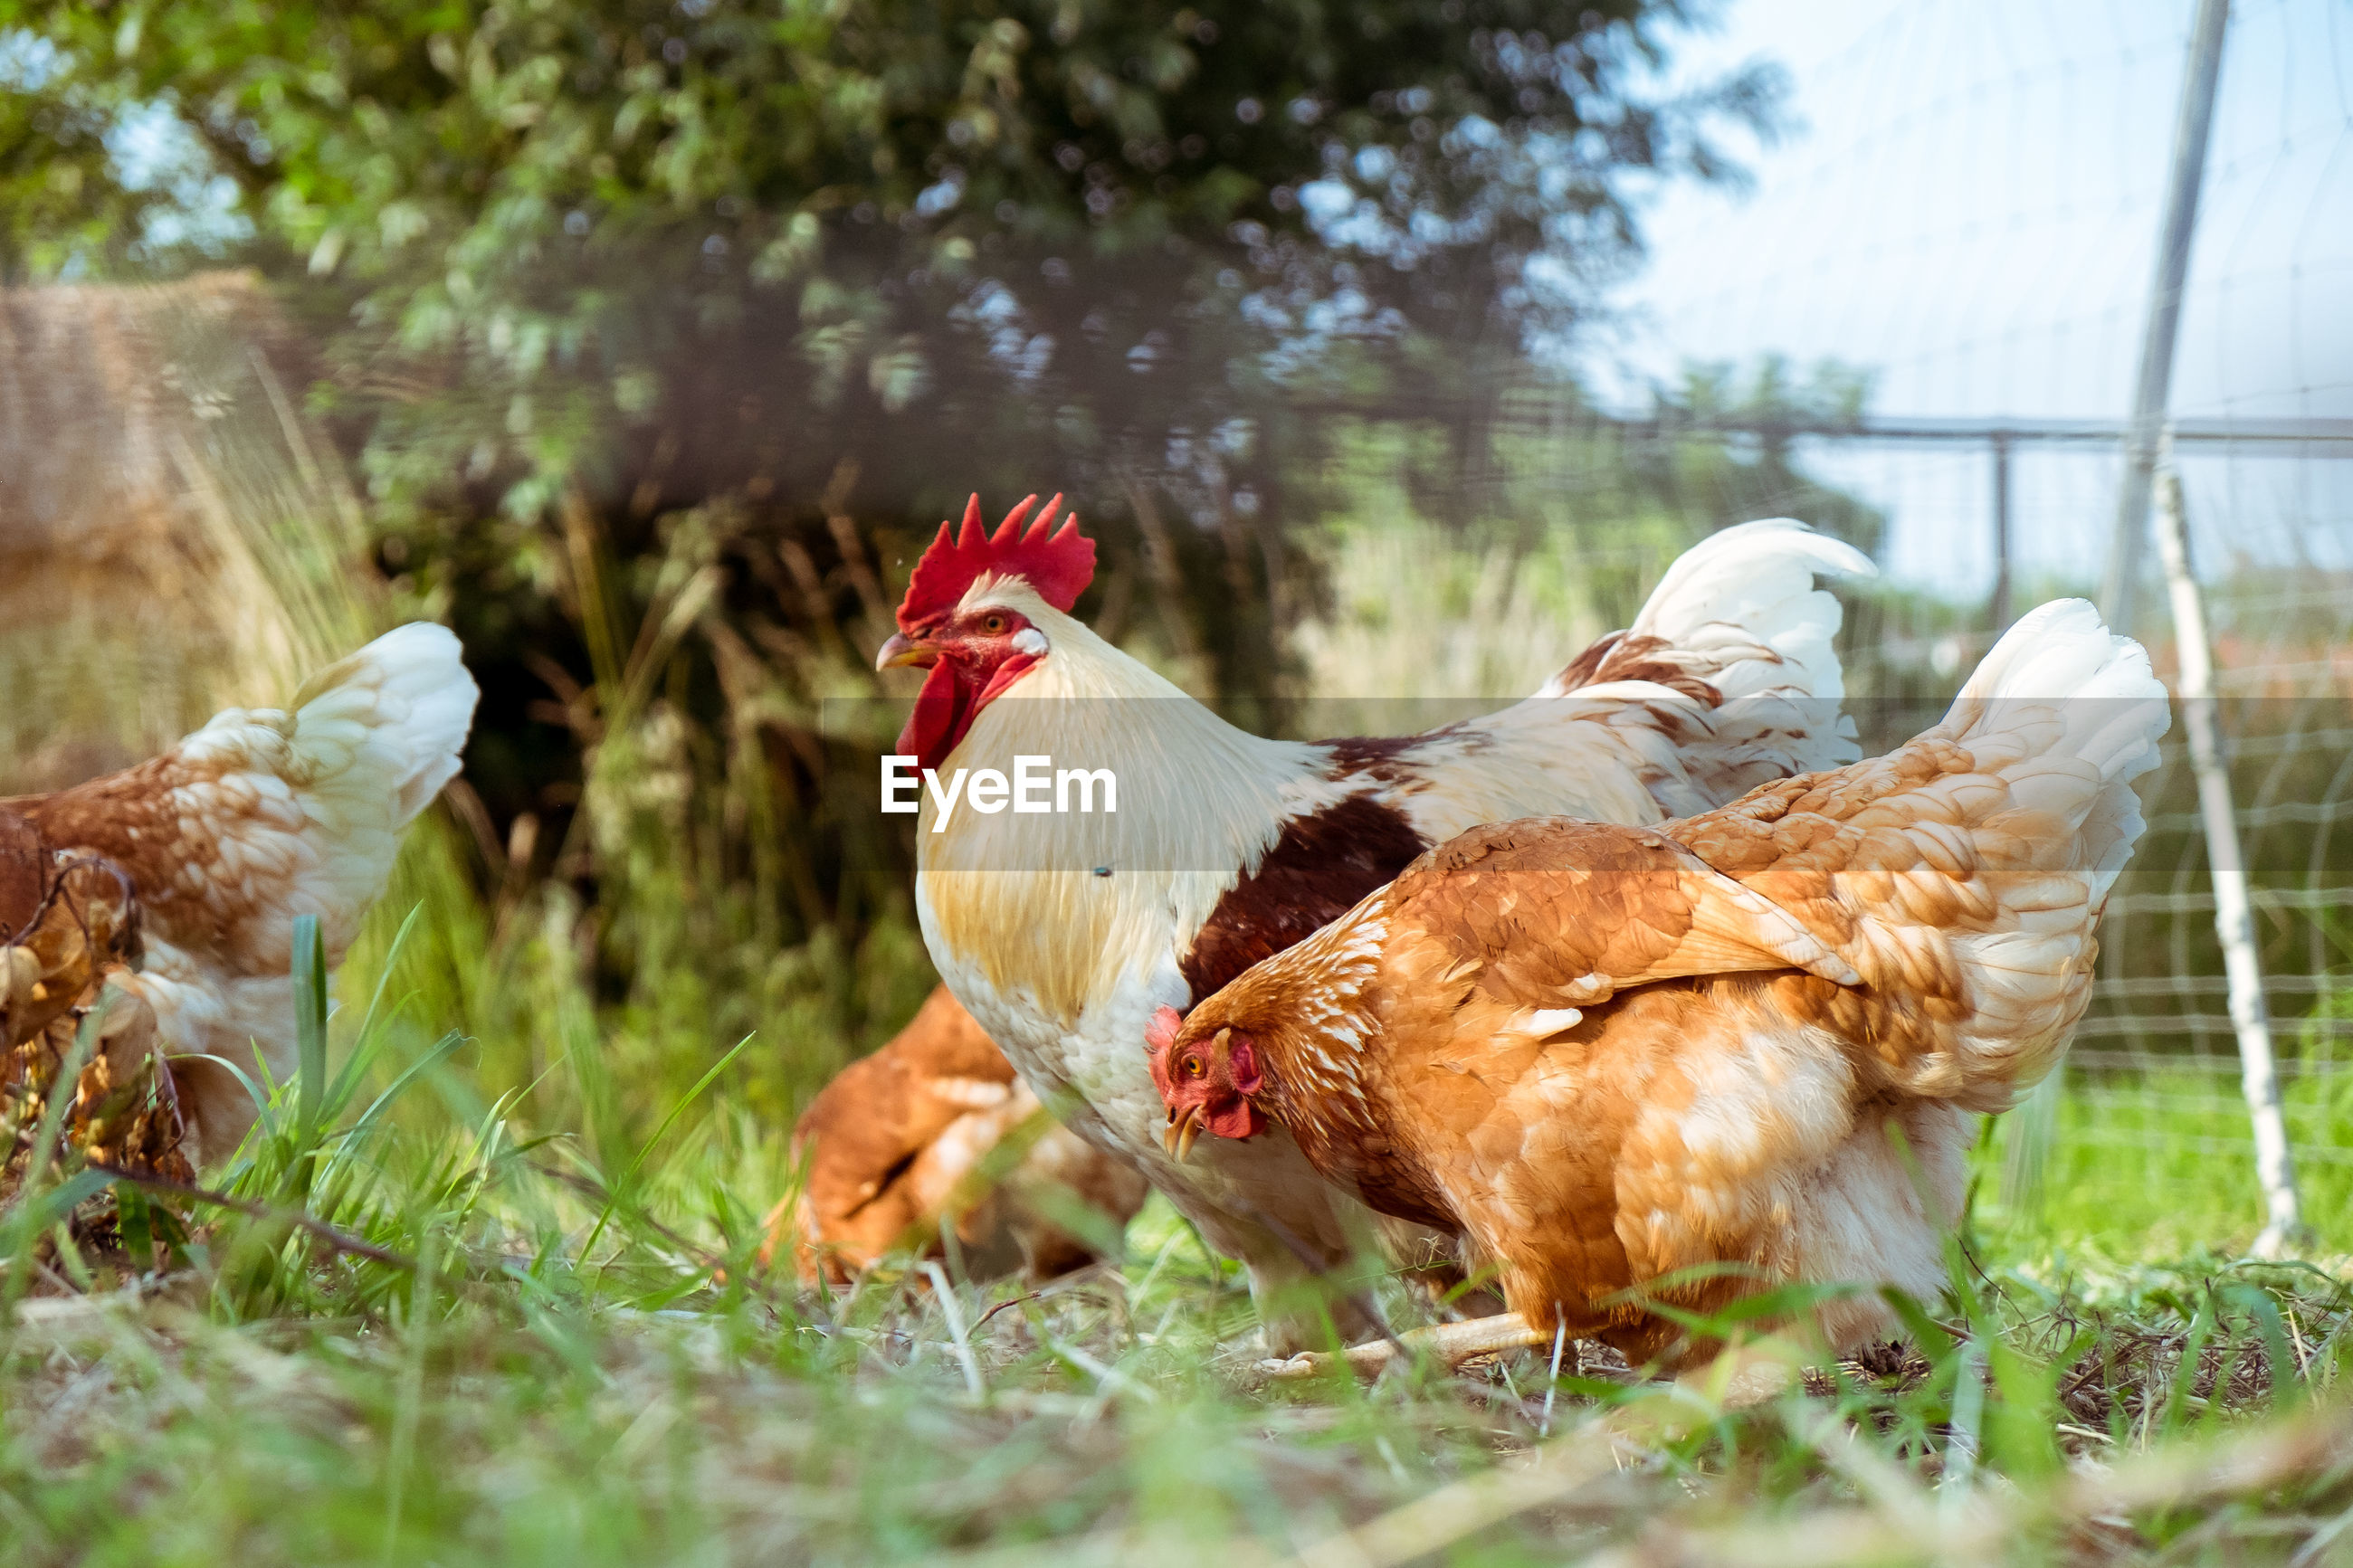 Rooster and hens on grassy field